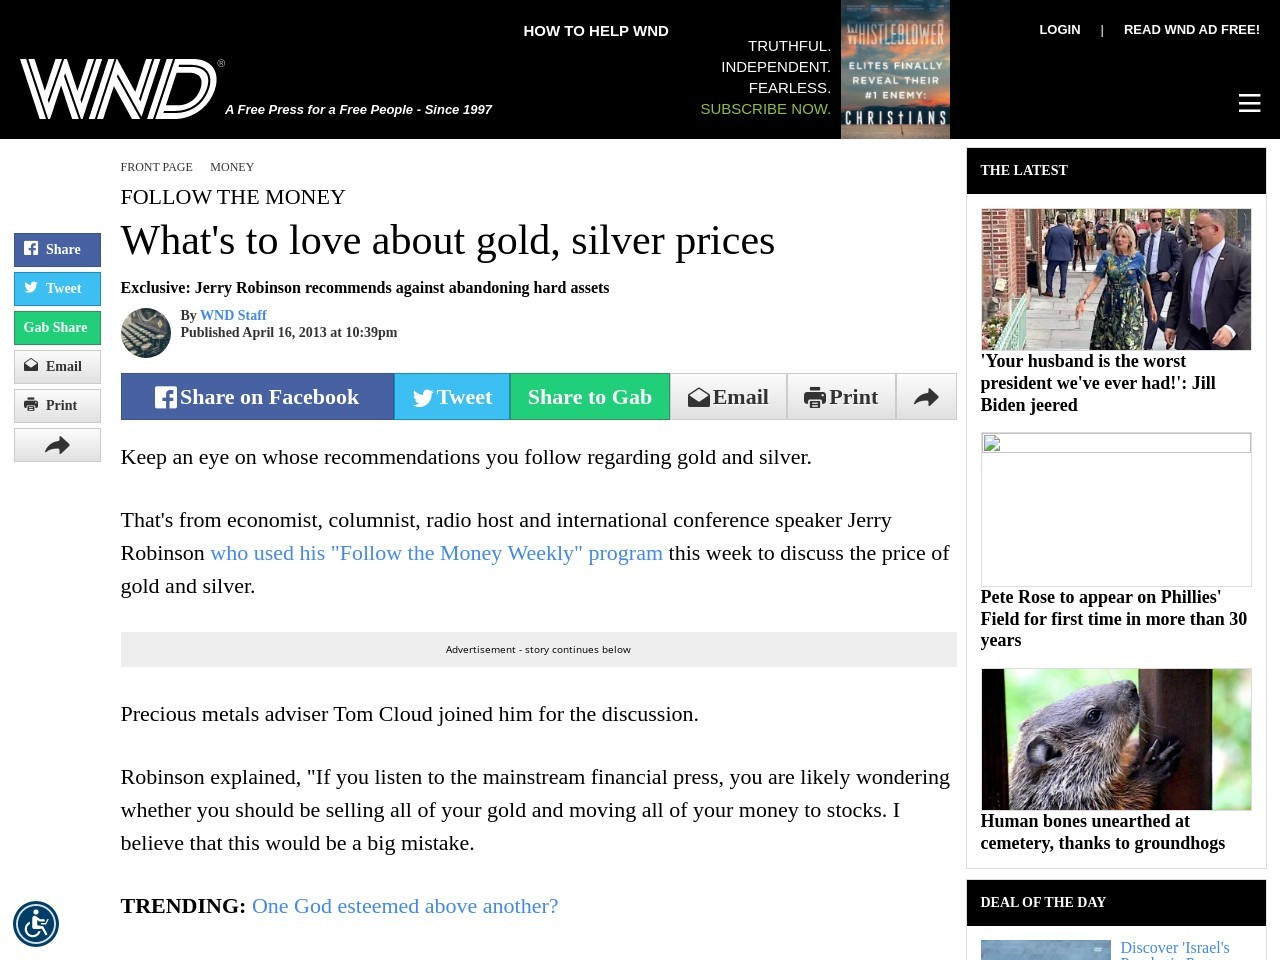 What's to love about gold, silver prices – WorldNetDaily